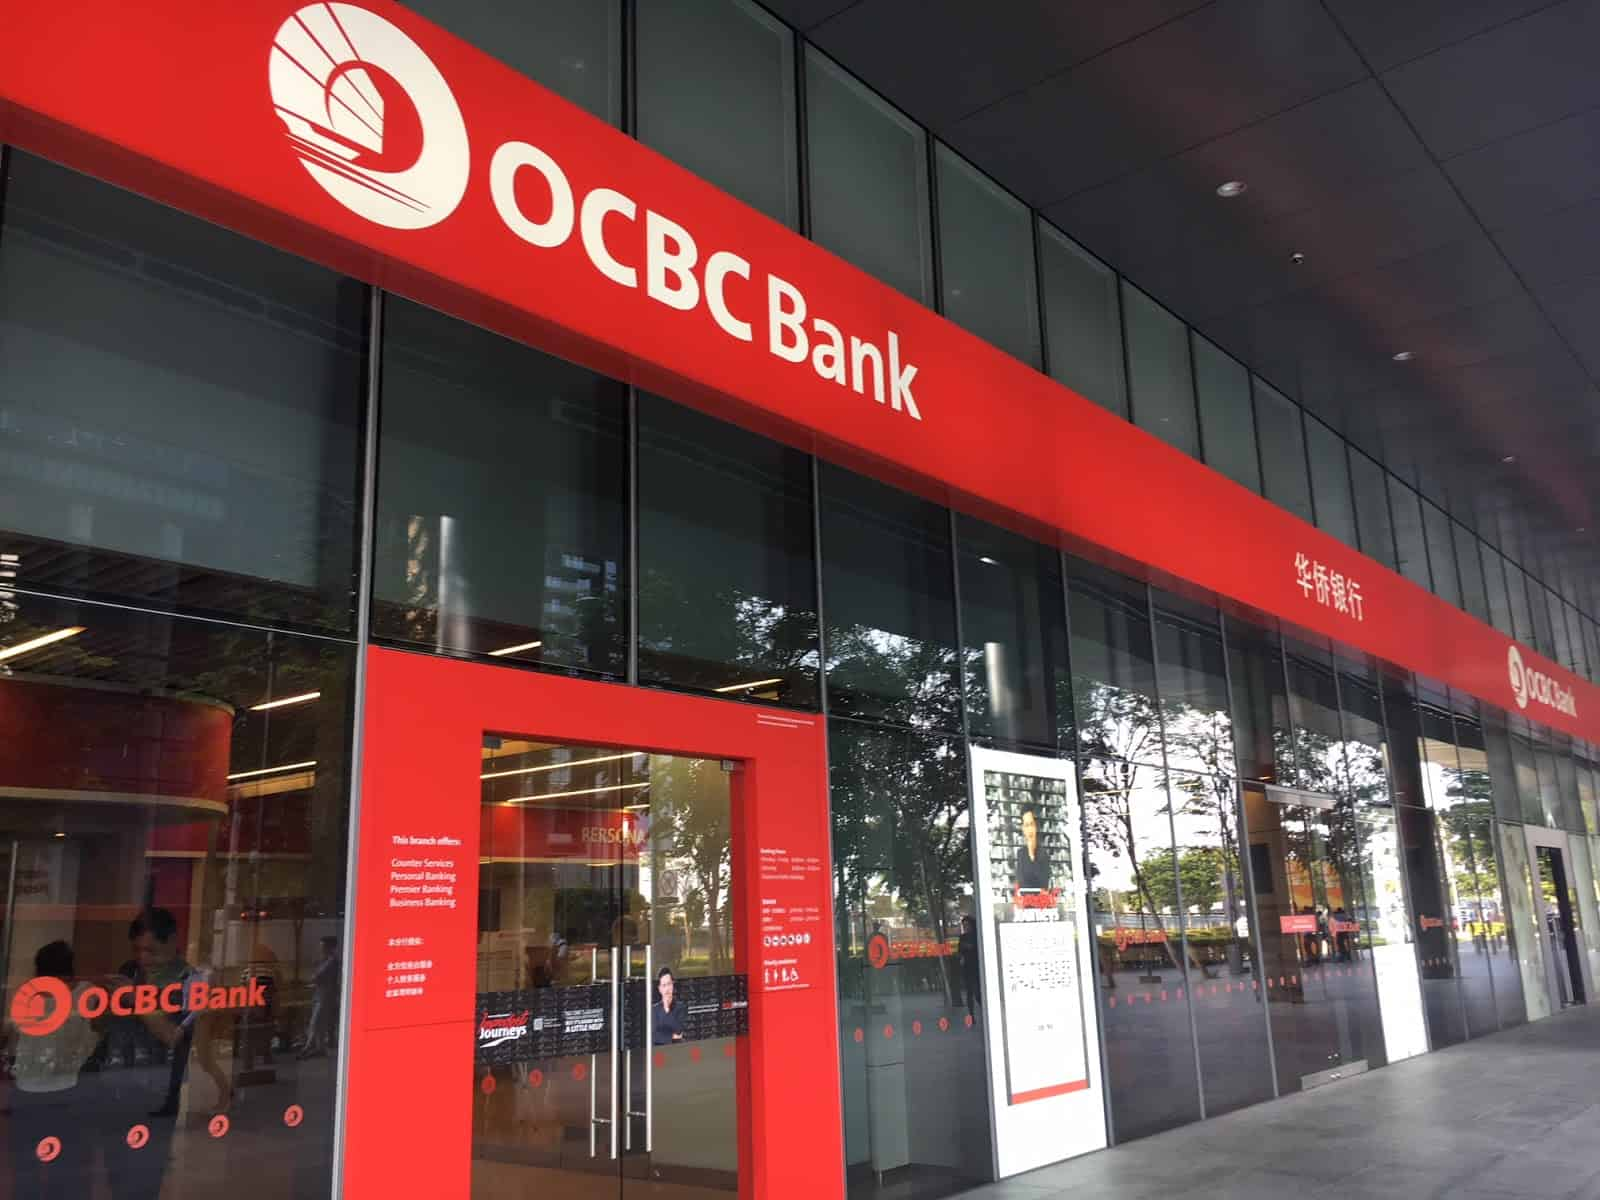 Revision of Interest Rates for OCBC 360 Account from 1 July 2020